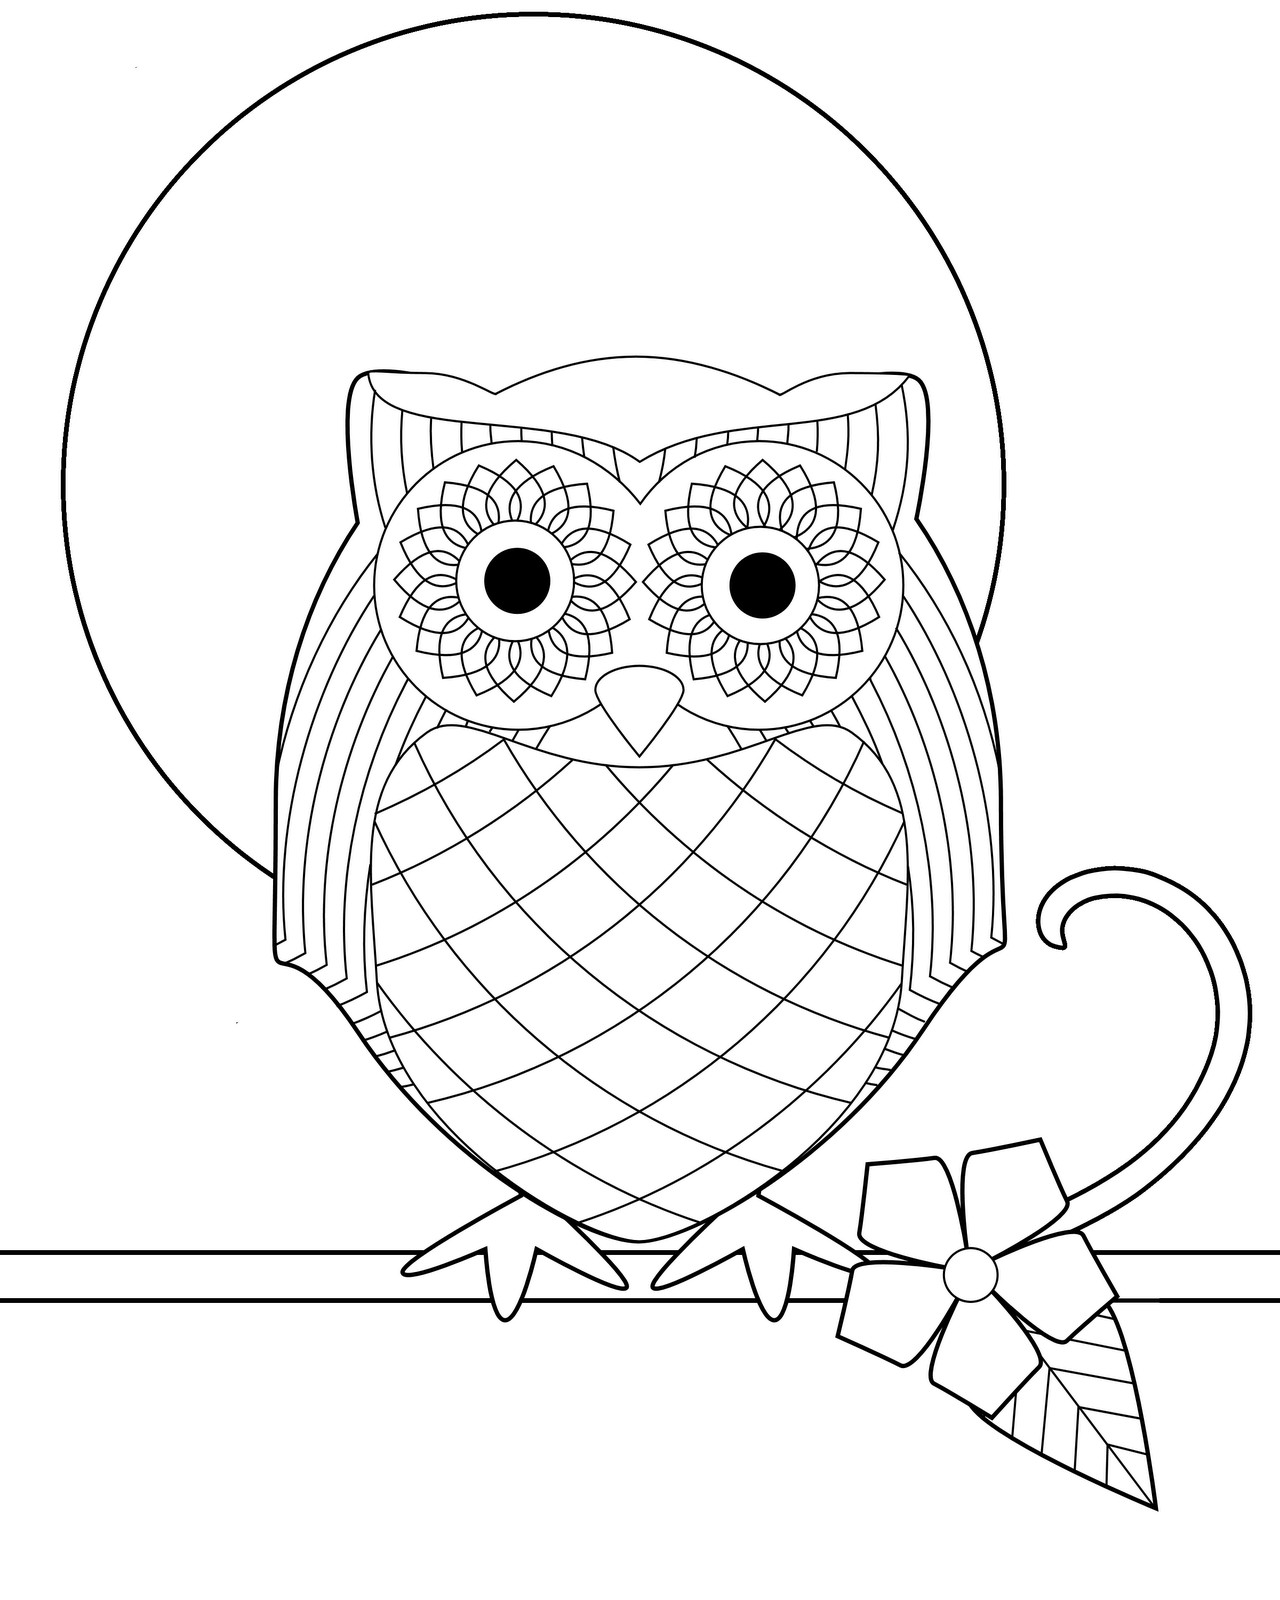 Free Owl Coloring Pages  Free Printable Owl Coloring Pages For Kids